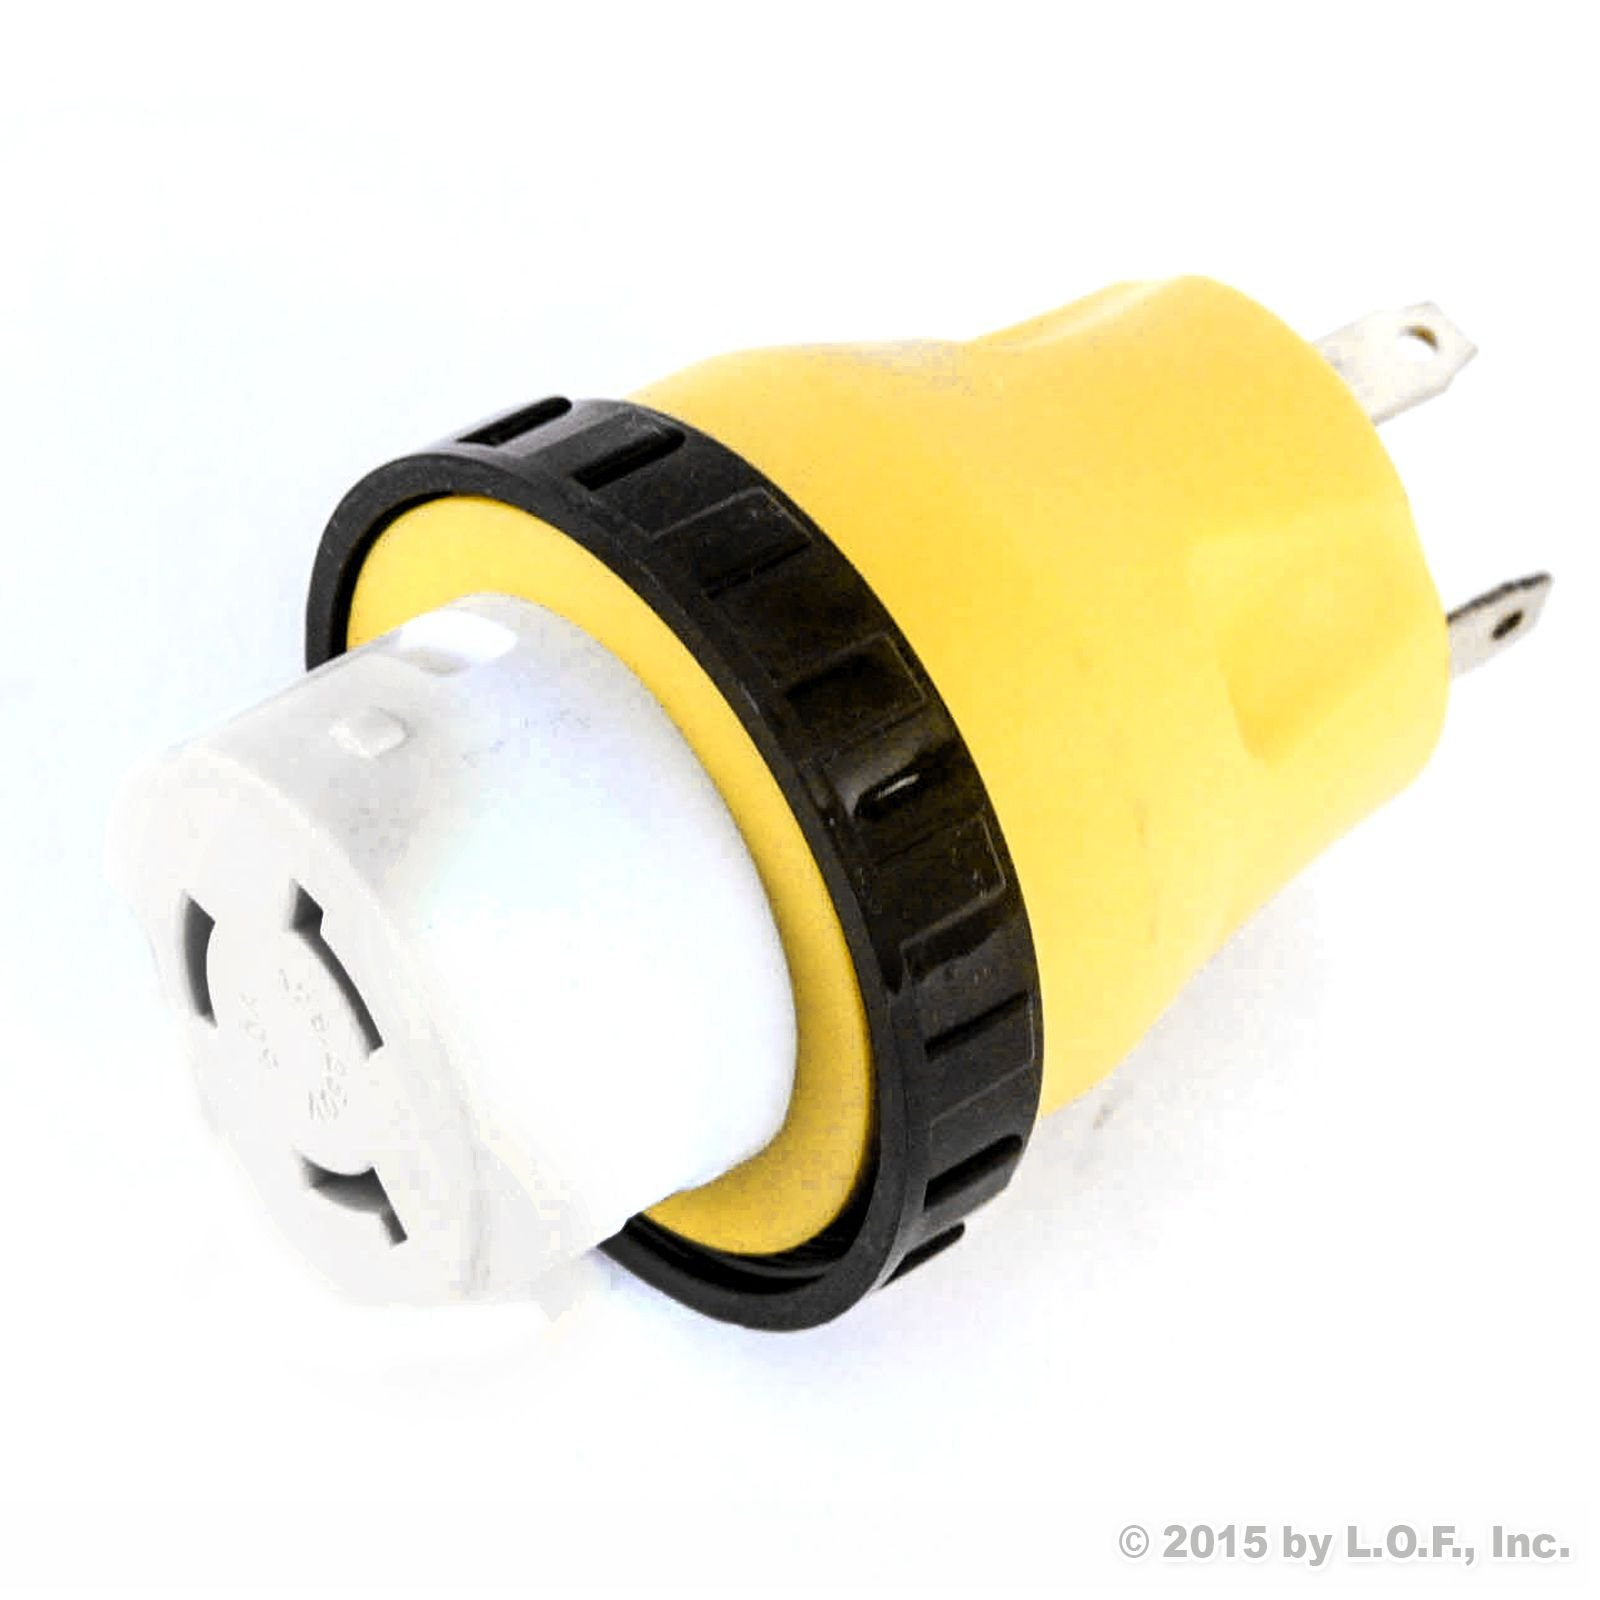 hight resolution of get quotations rv electrical locking adapter 30a male to 50a female locking plug connector